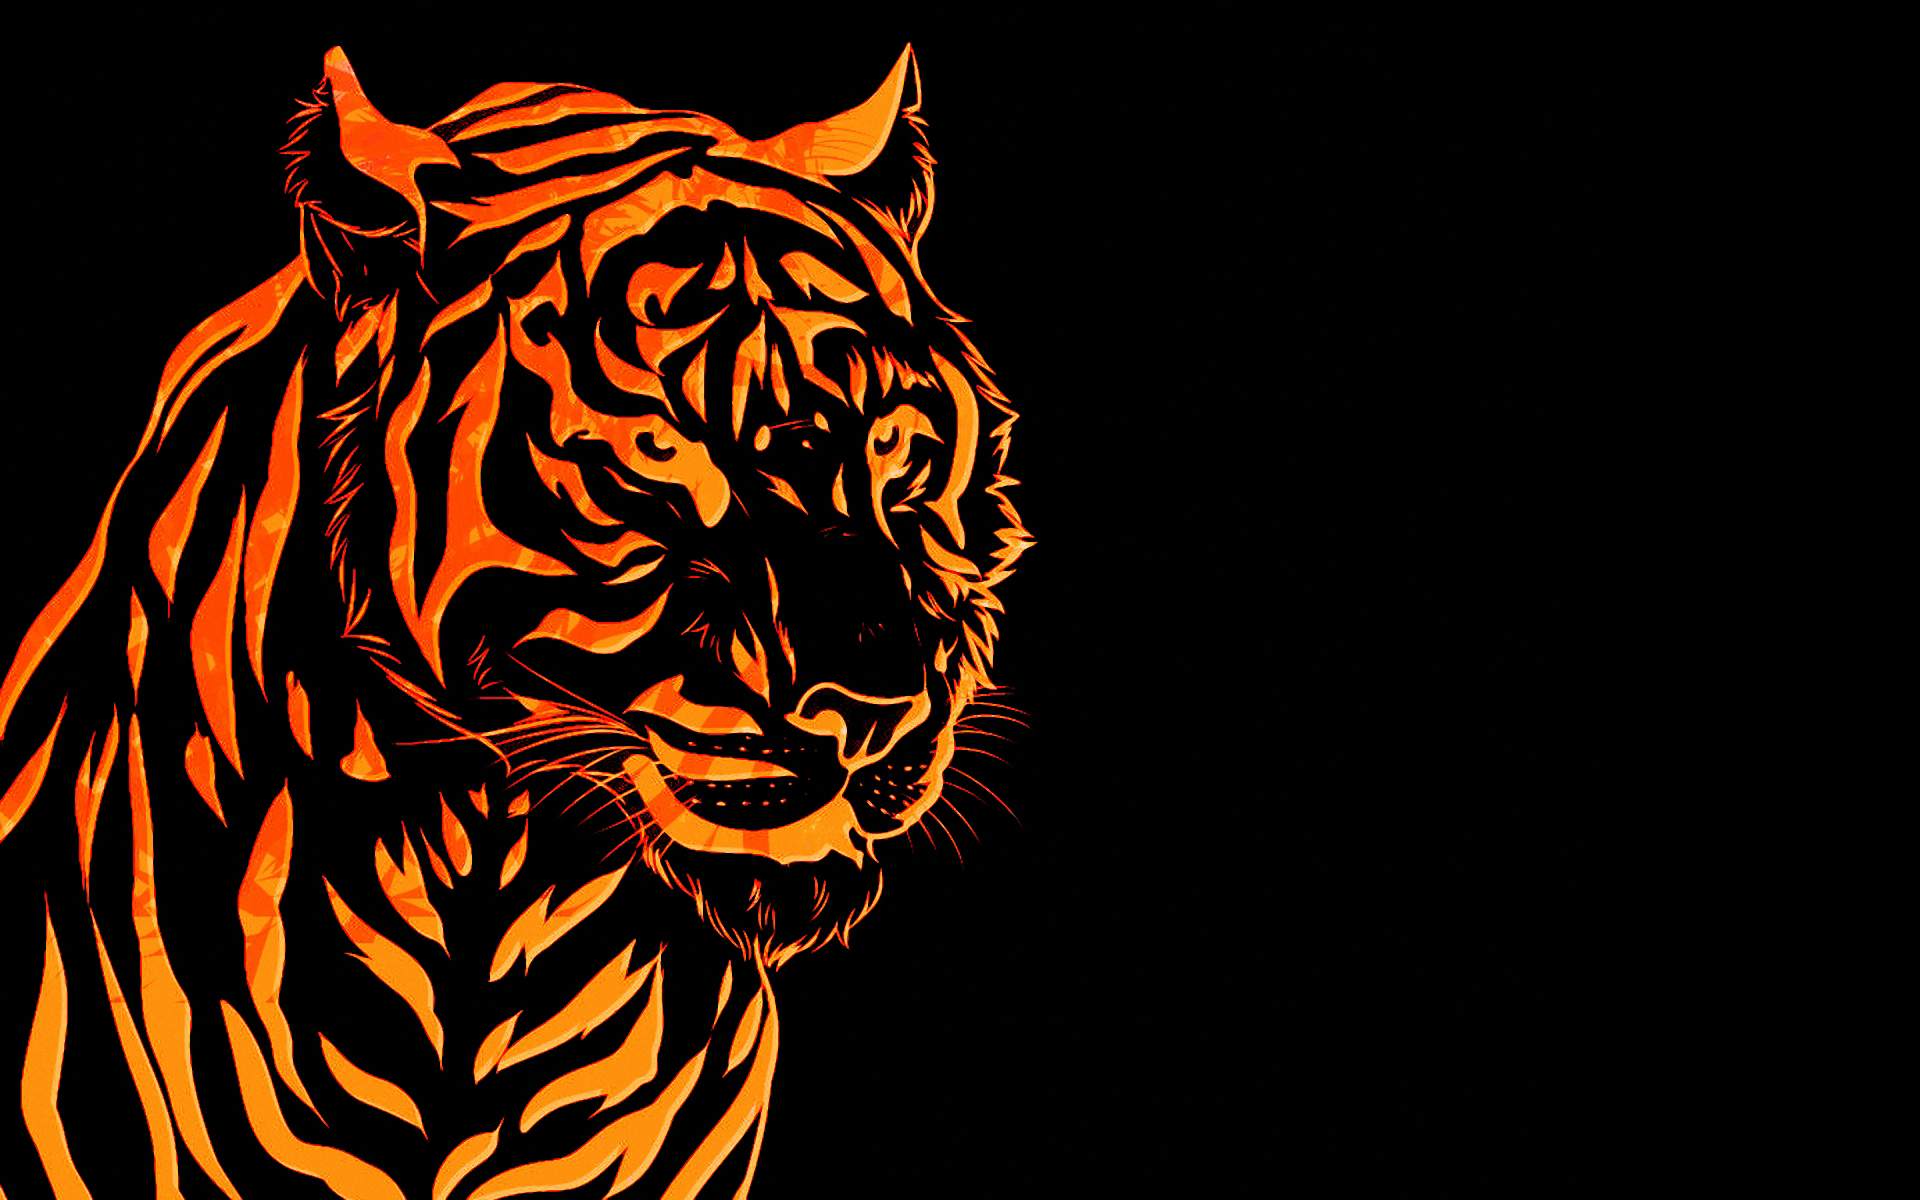 d-Animated-Tiger-d-HD-HD-wallpaper-wpc5803870